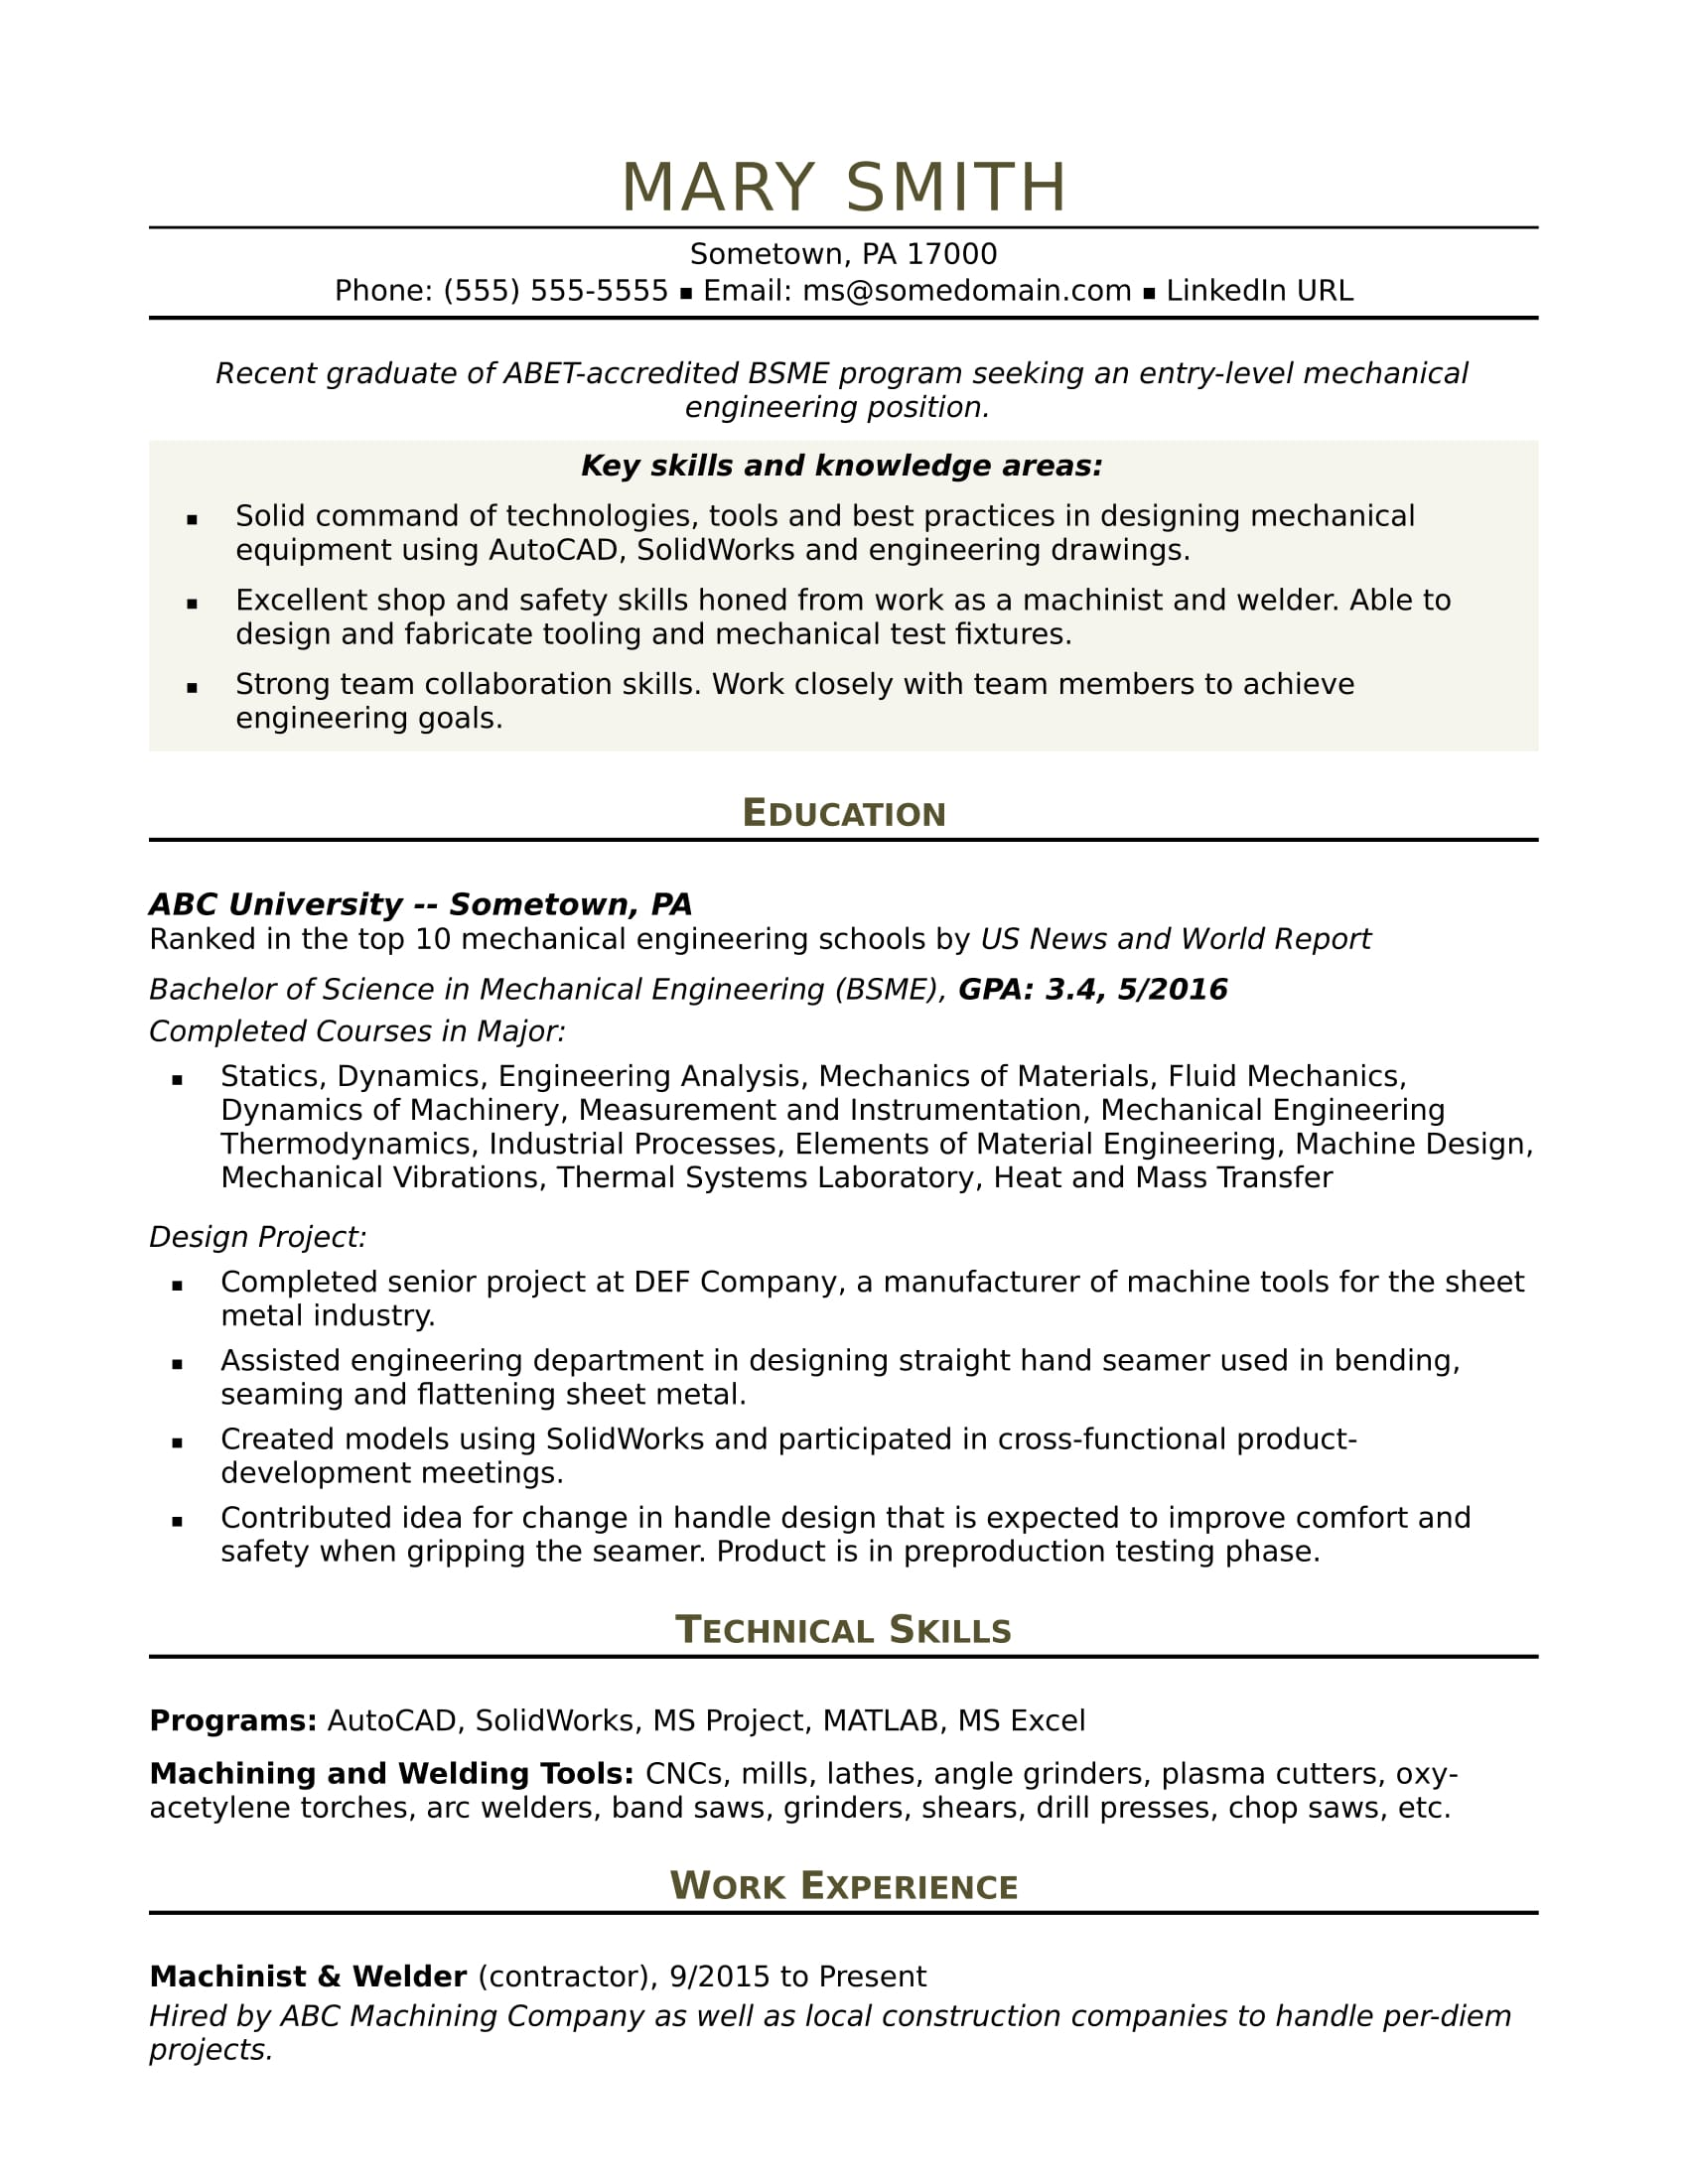 Mechanical Engineer Resume Example.Sample Resume For An Entry Level Mechanical Engineer